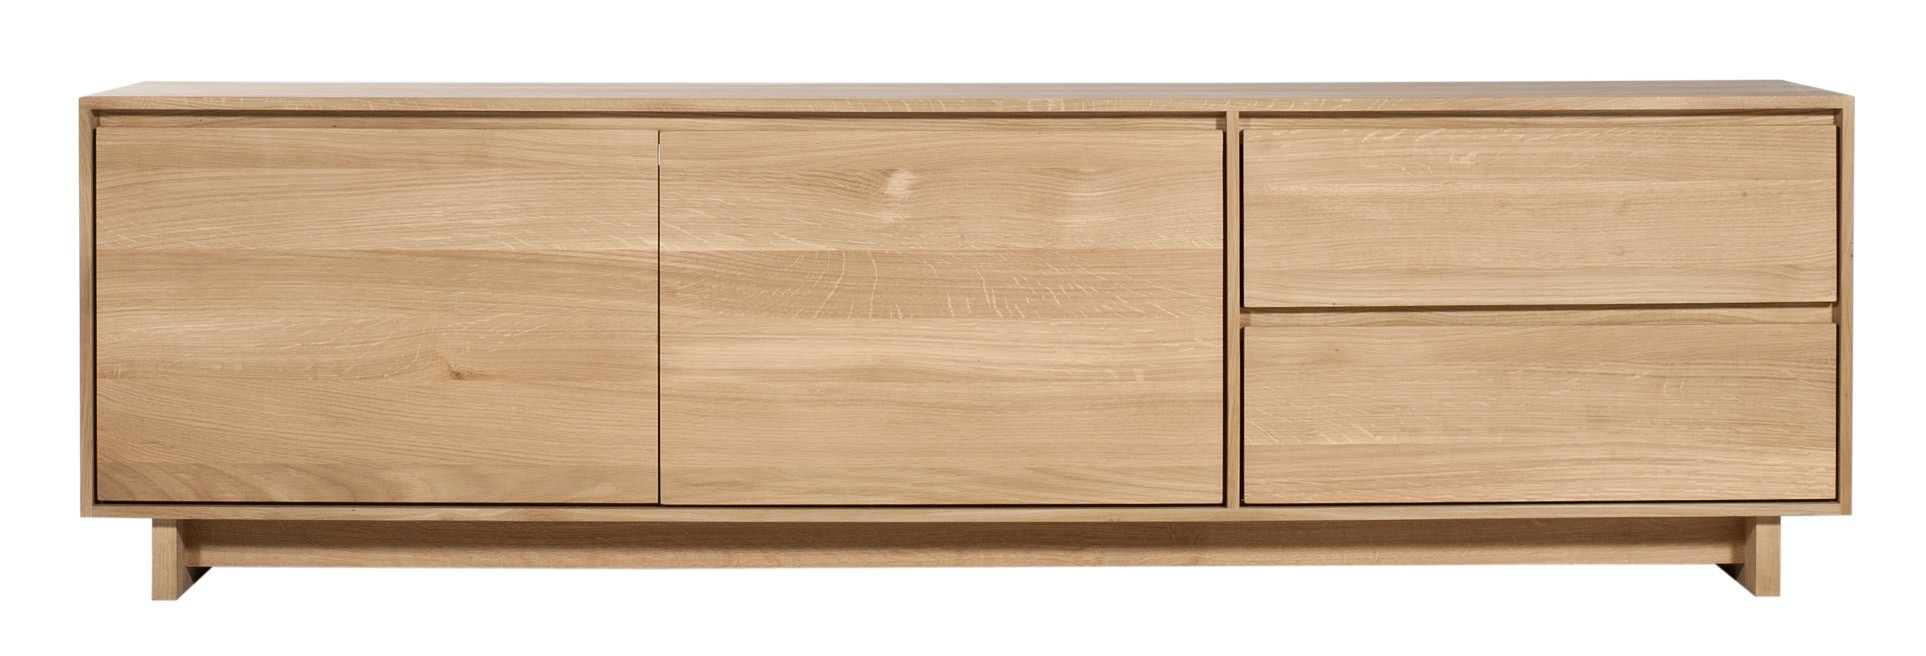 Meuble Tv Oak Wave D Ethnicraft 2 Porte 1 Porte Abattante 1  # Meuble Tv Porte